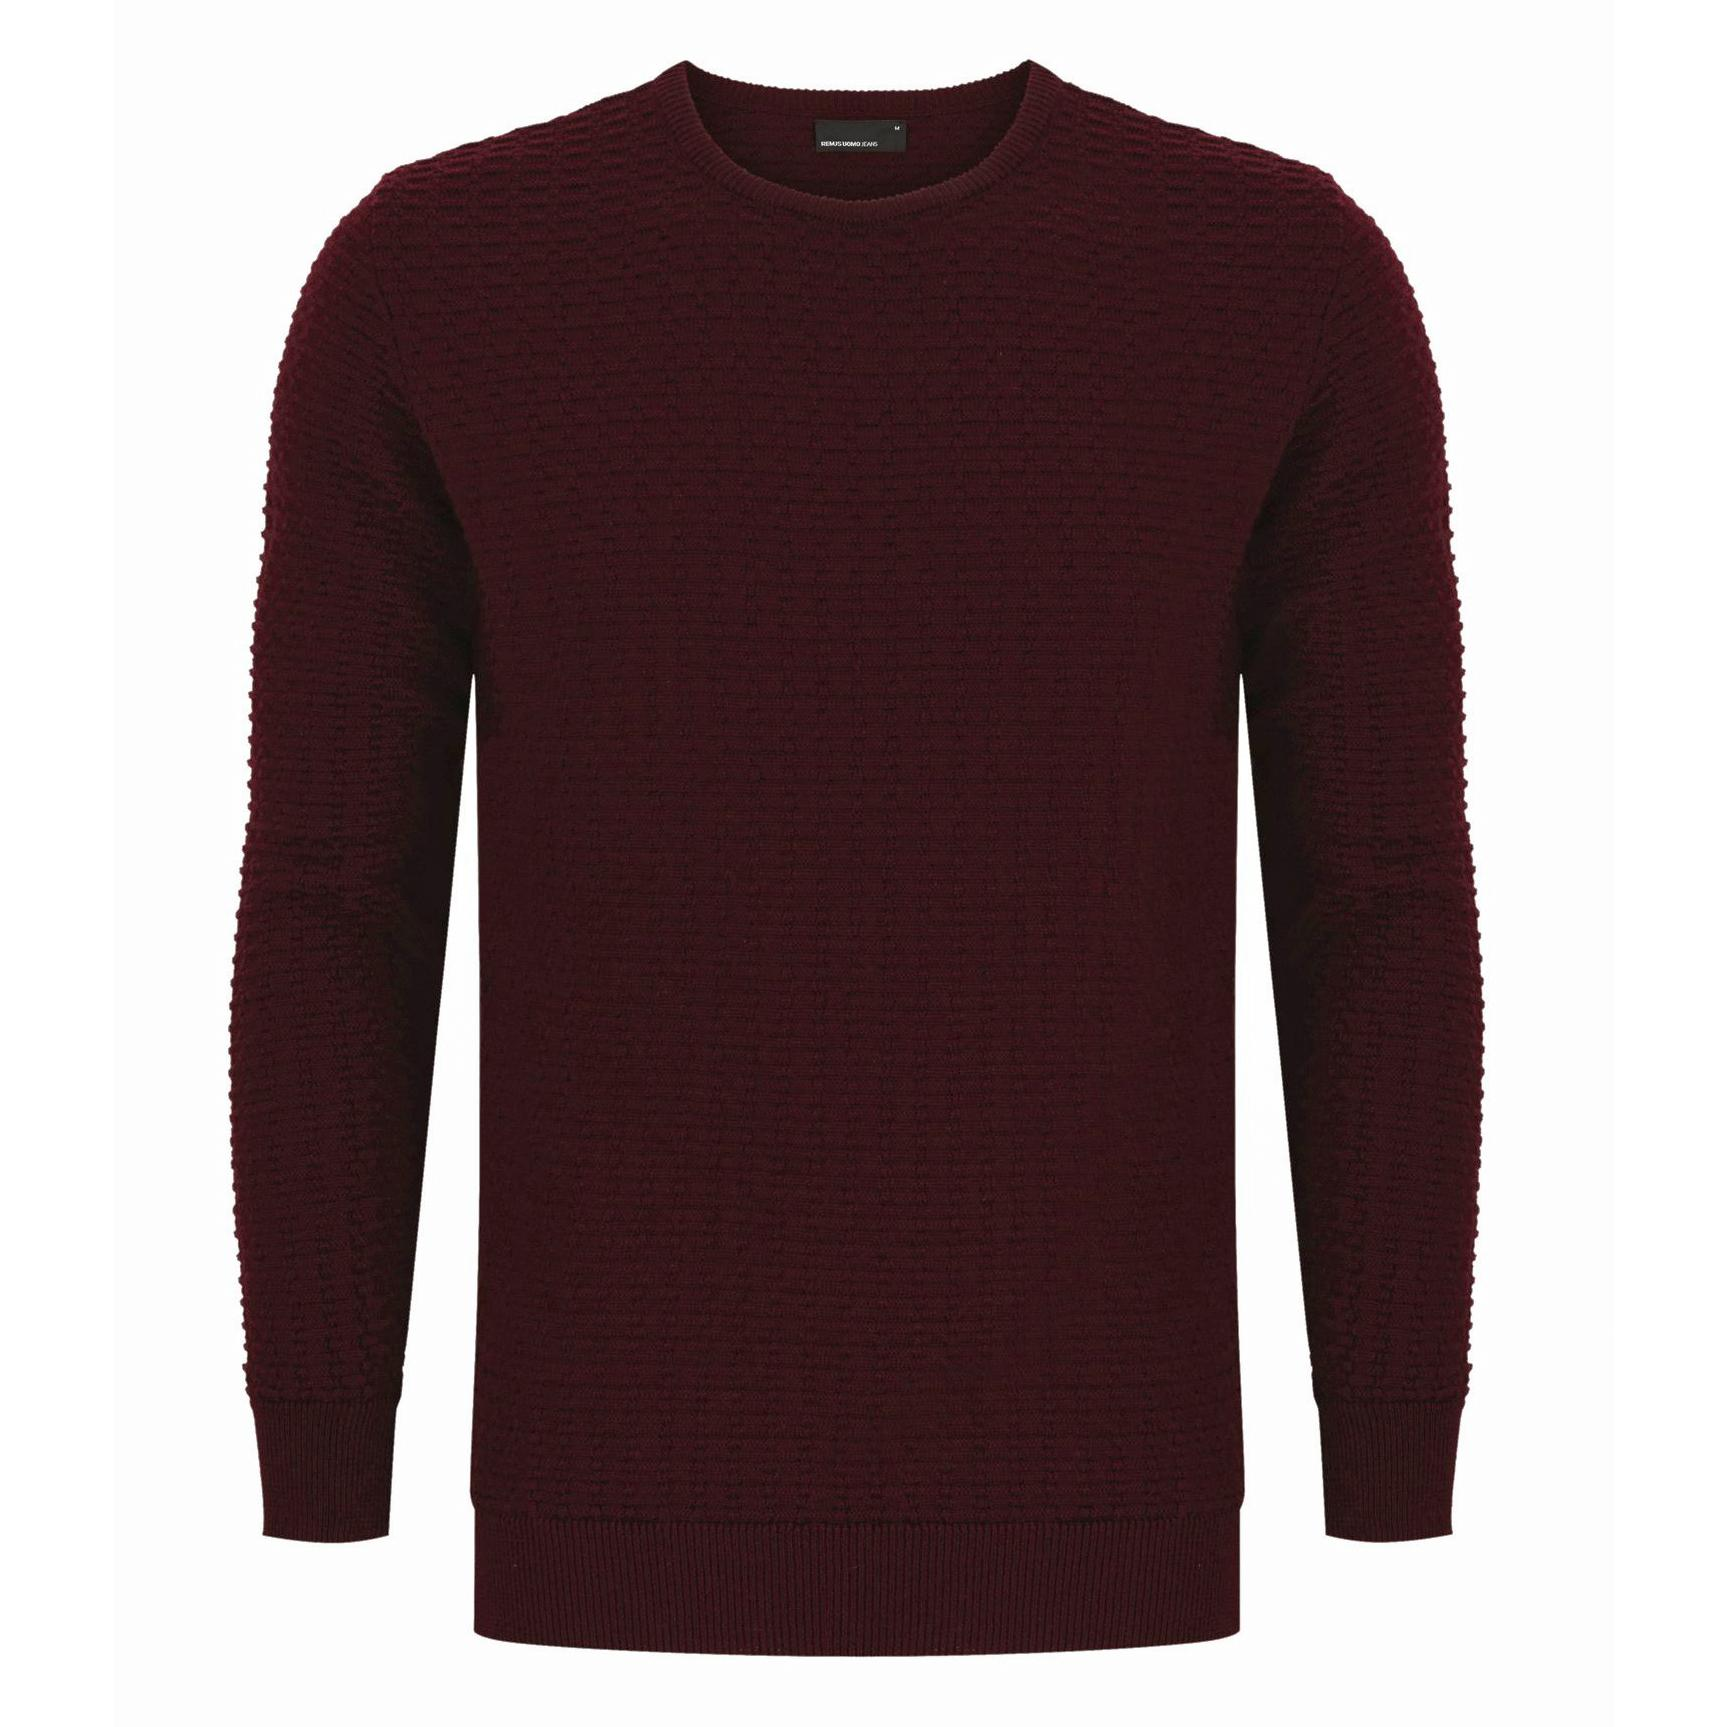 Remus Uomo Crew neck Sweater